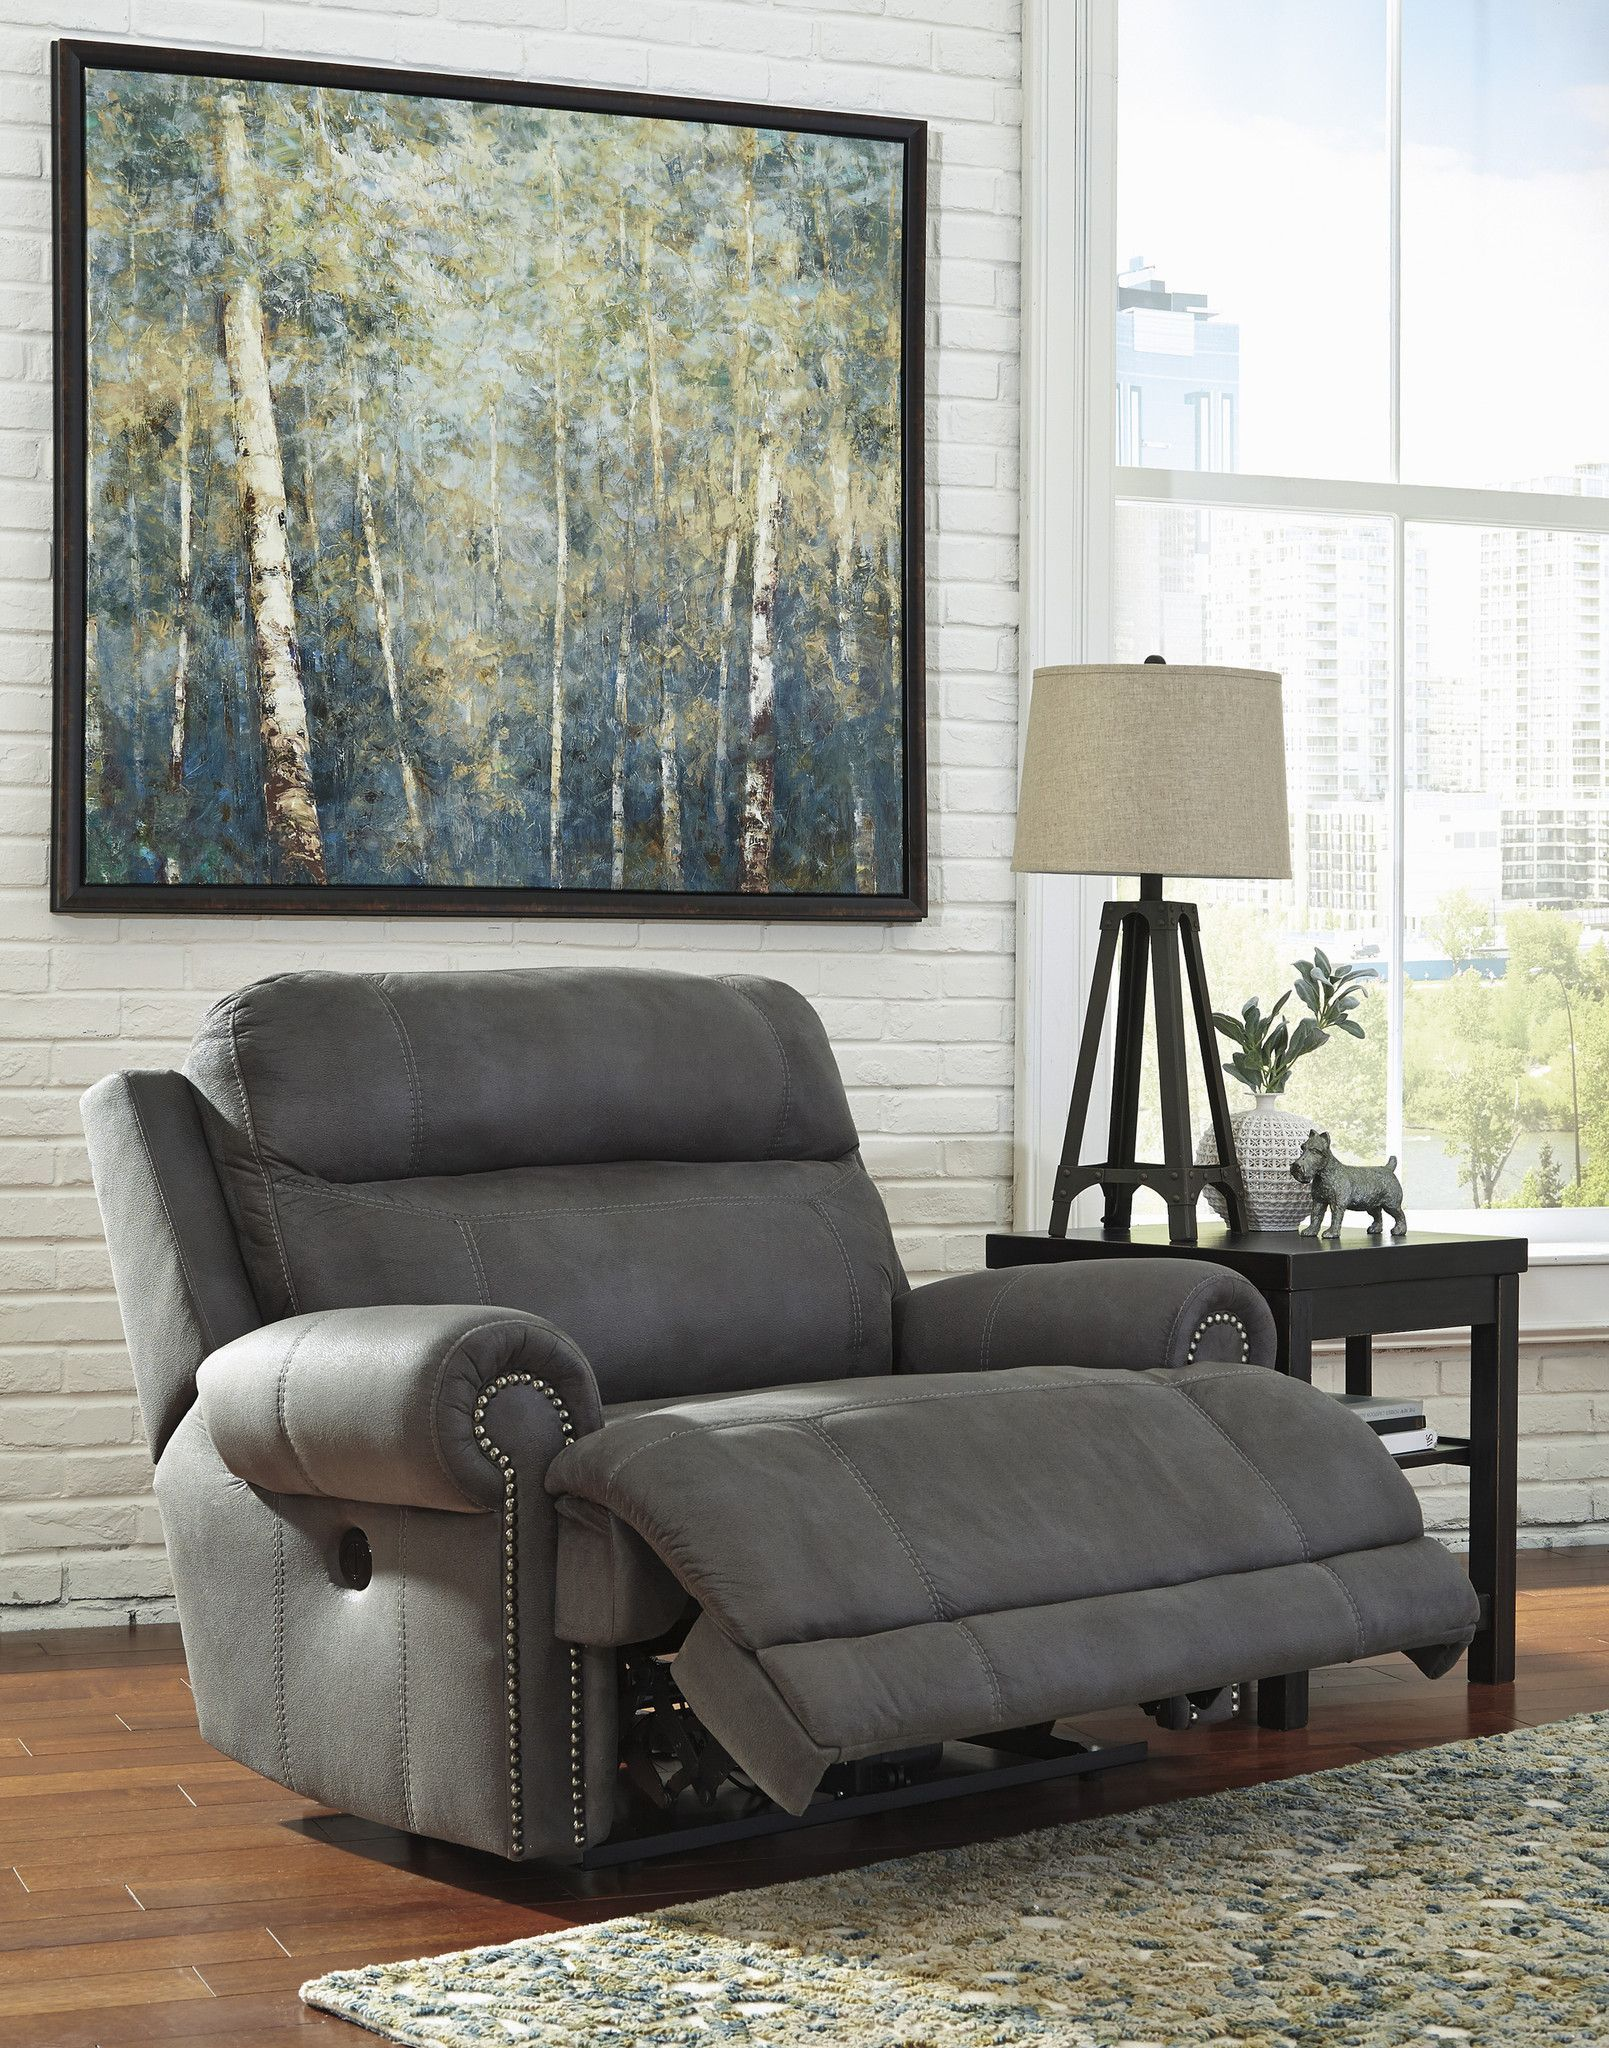 Austere Wide Power Recliner By Ashley Furniture At Kensington Furniture This Chair Is Made Extra Wide For Extra Comfort Furniture Ashley Furniture Home